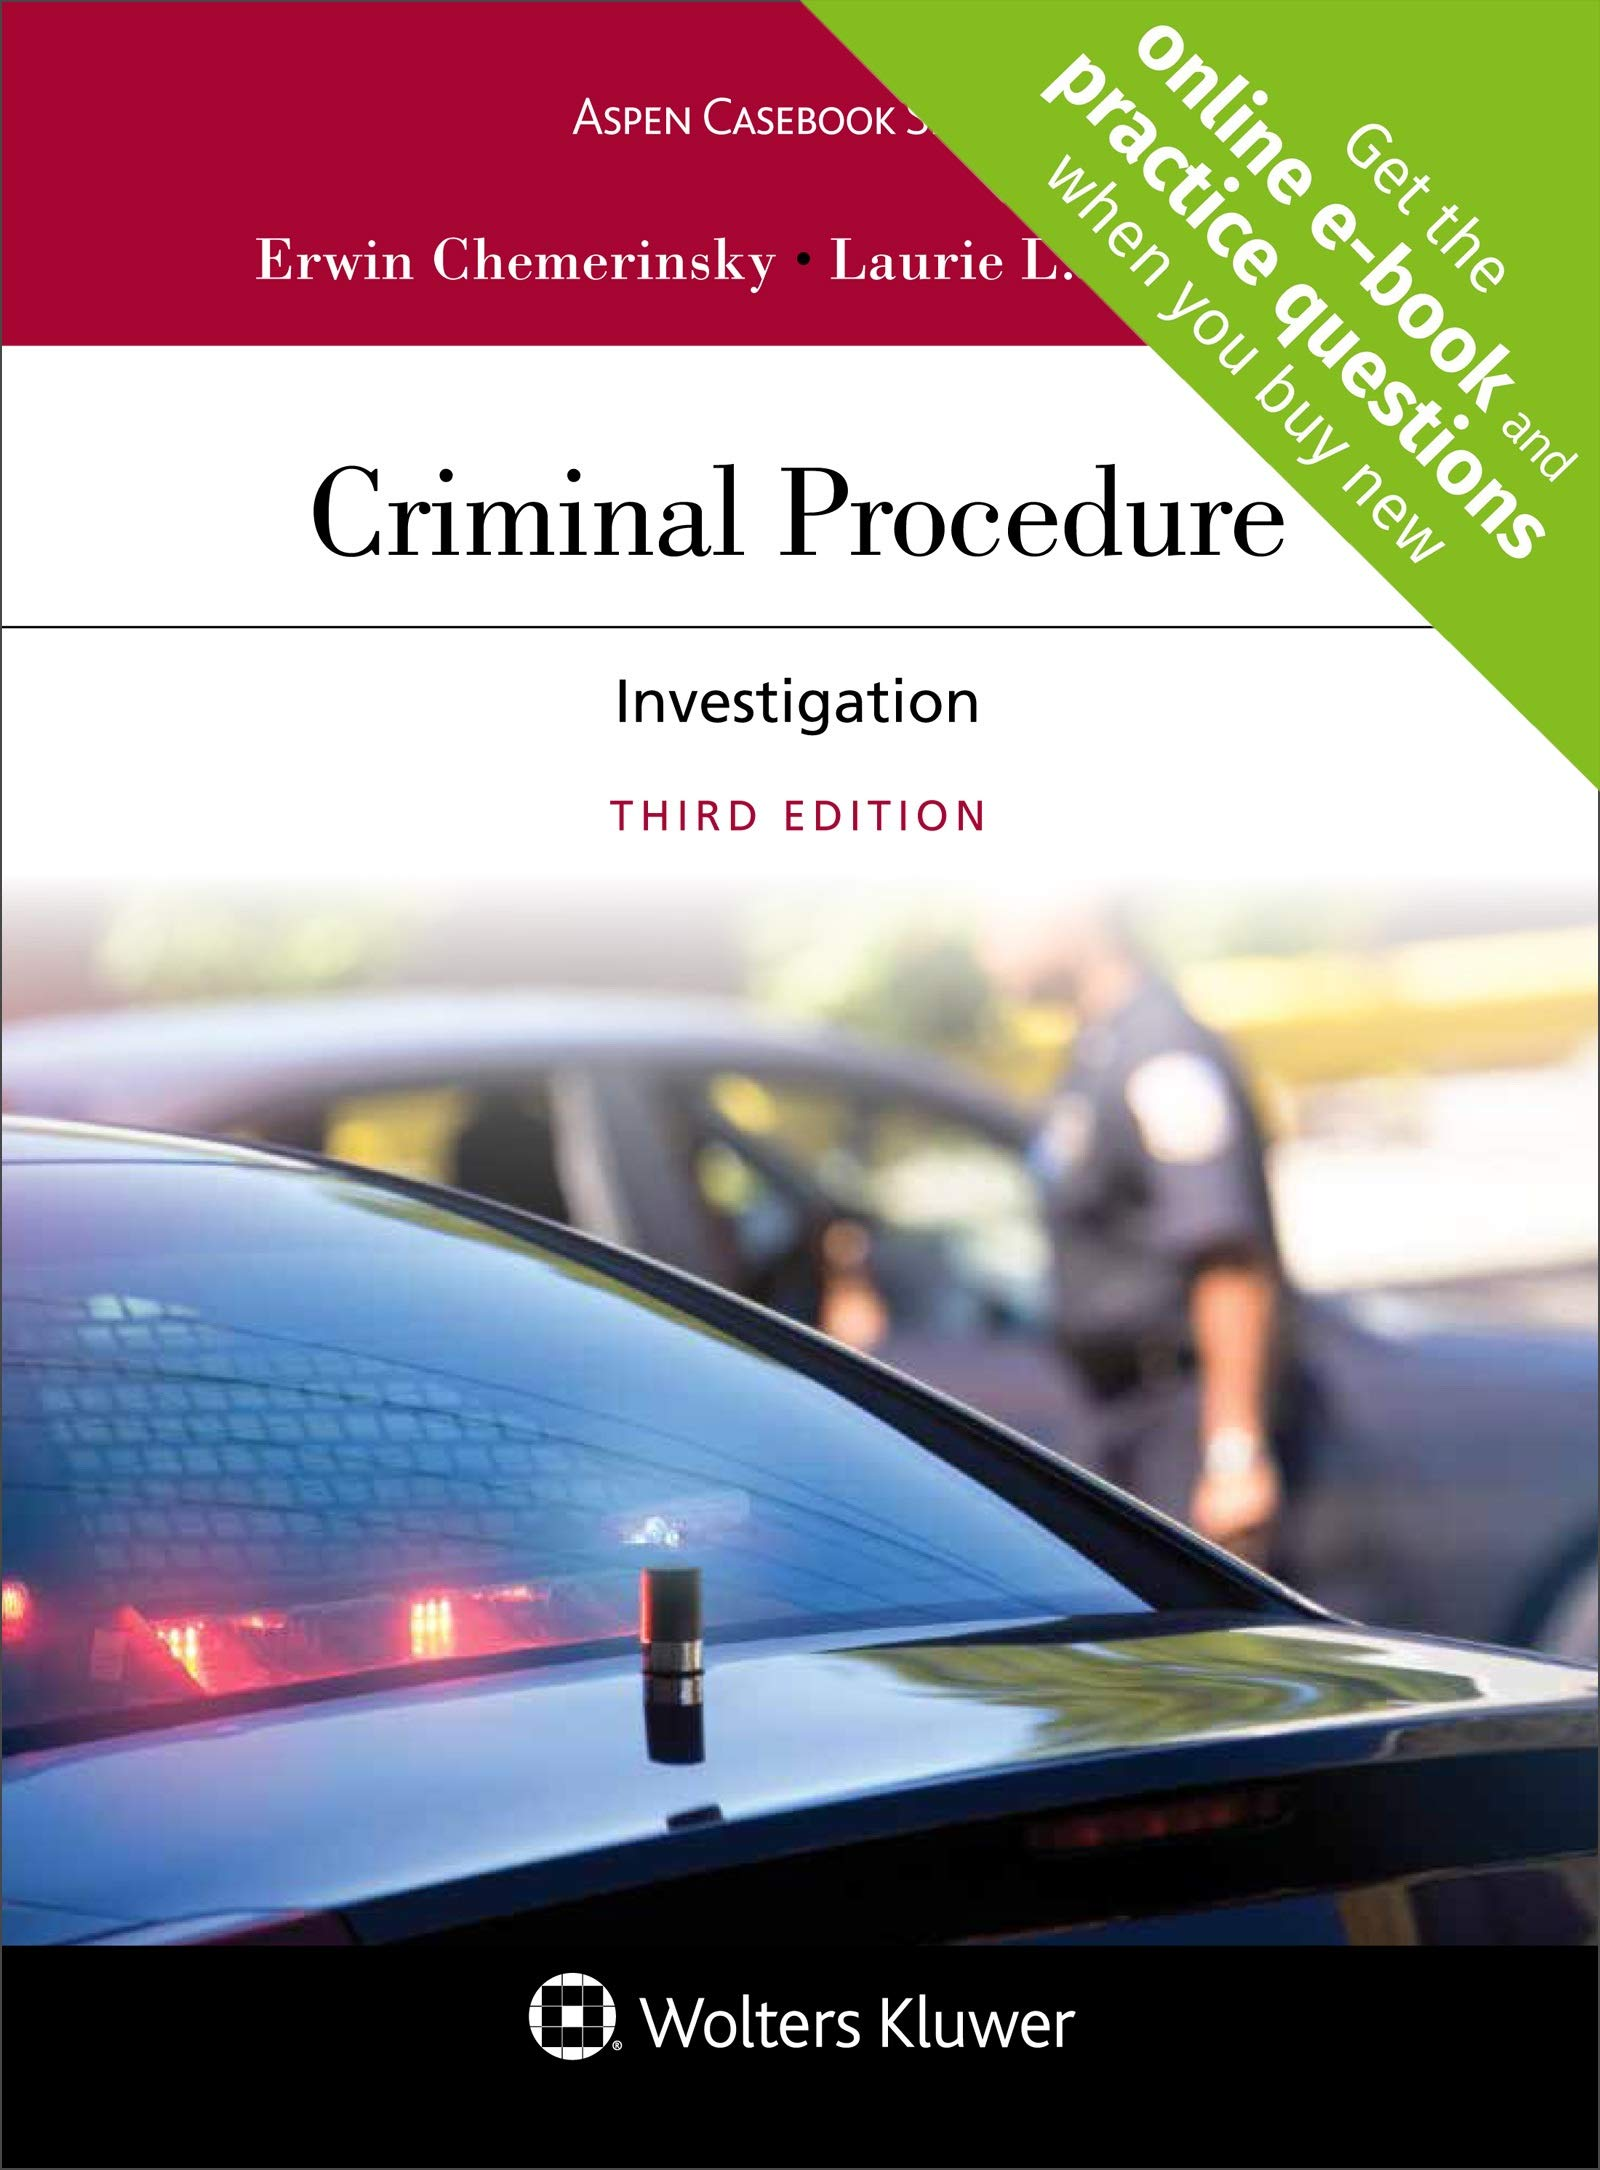 Criminal Procedure: Investigation (Aspen Casebook) by Wolters Kluwer